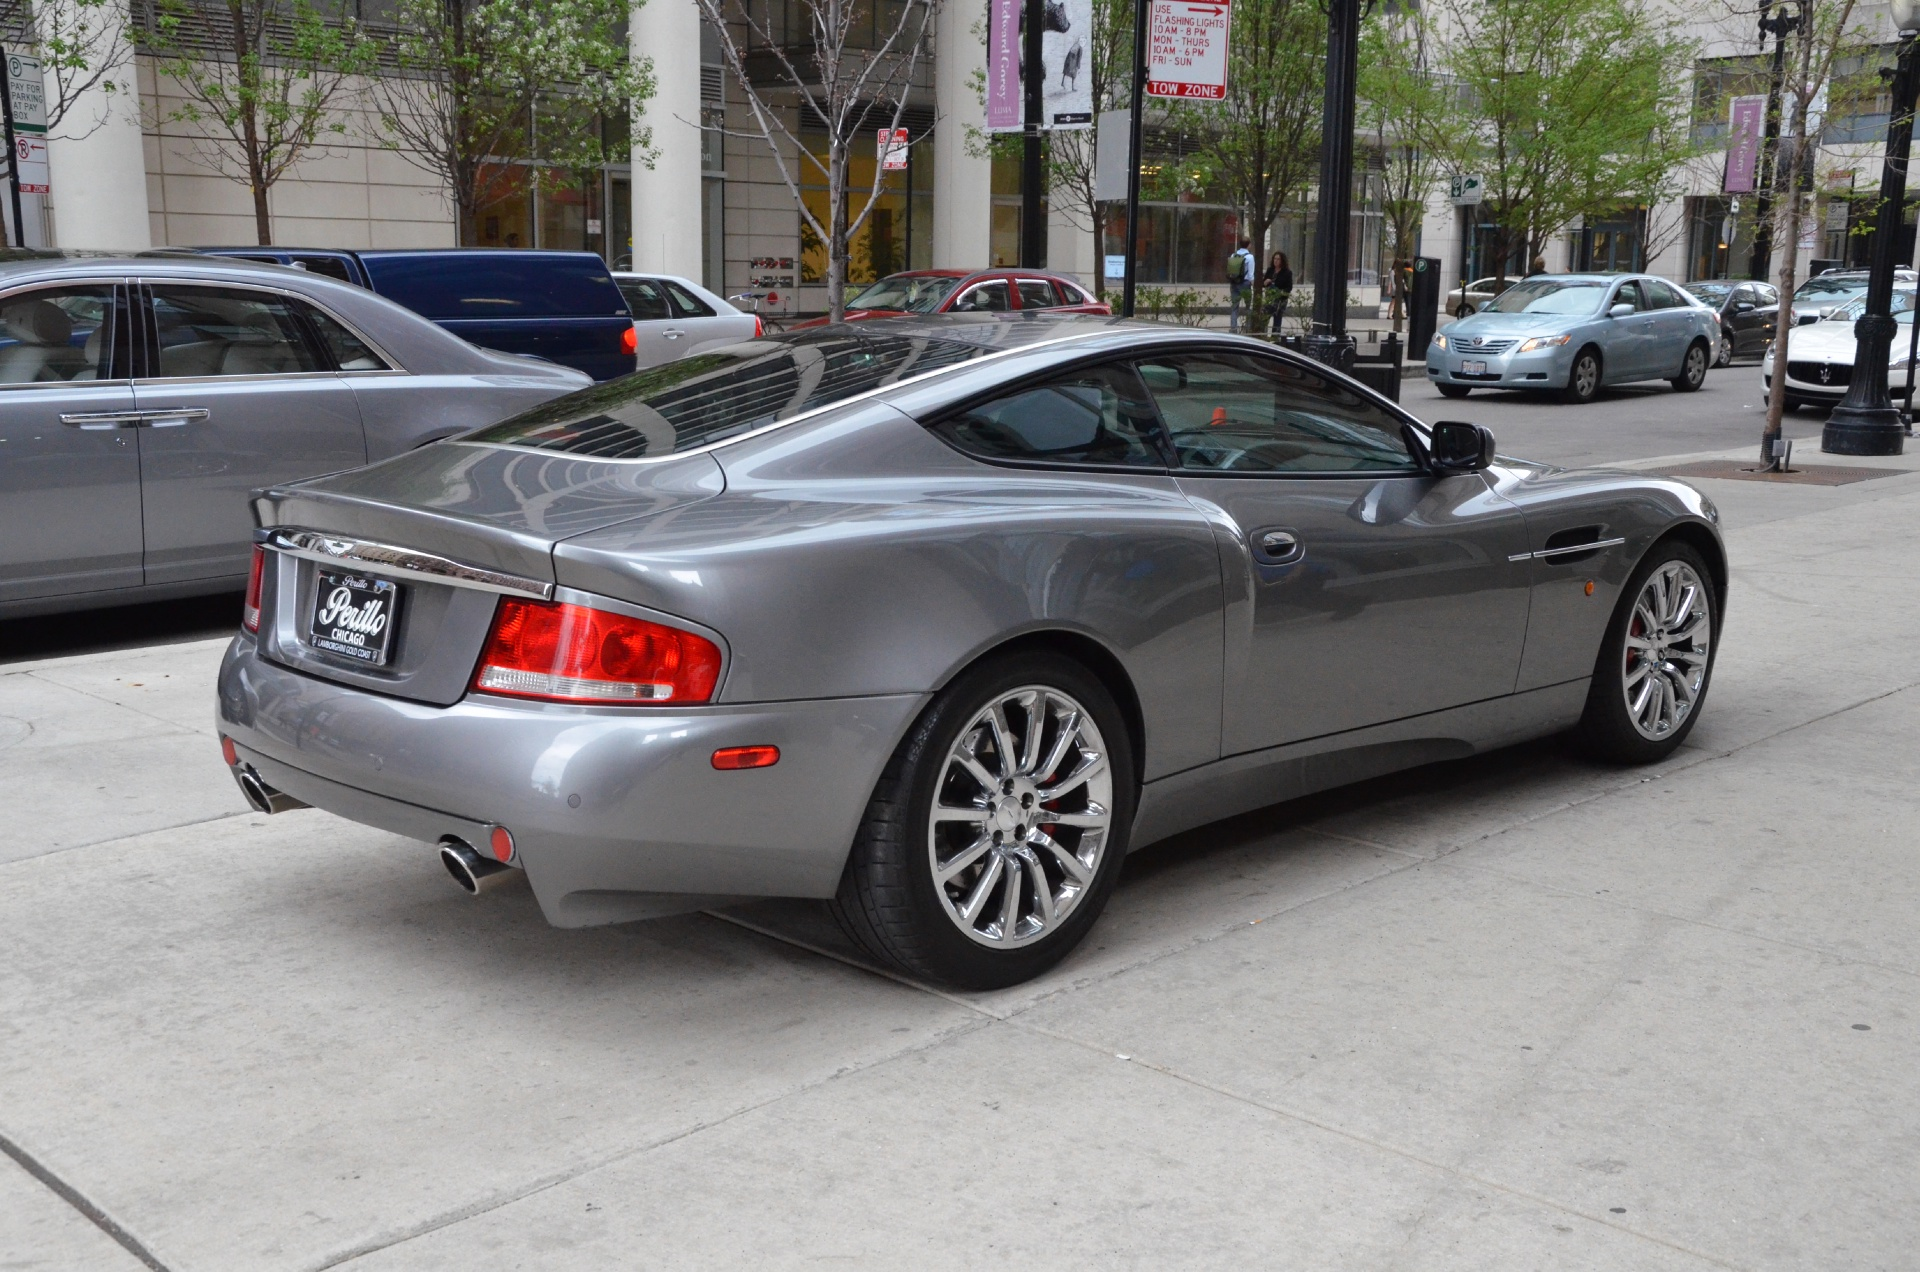 Aston Martin V Vanquish Stock GC For Sale Near Chicago - Aston martin v12 vanquish